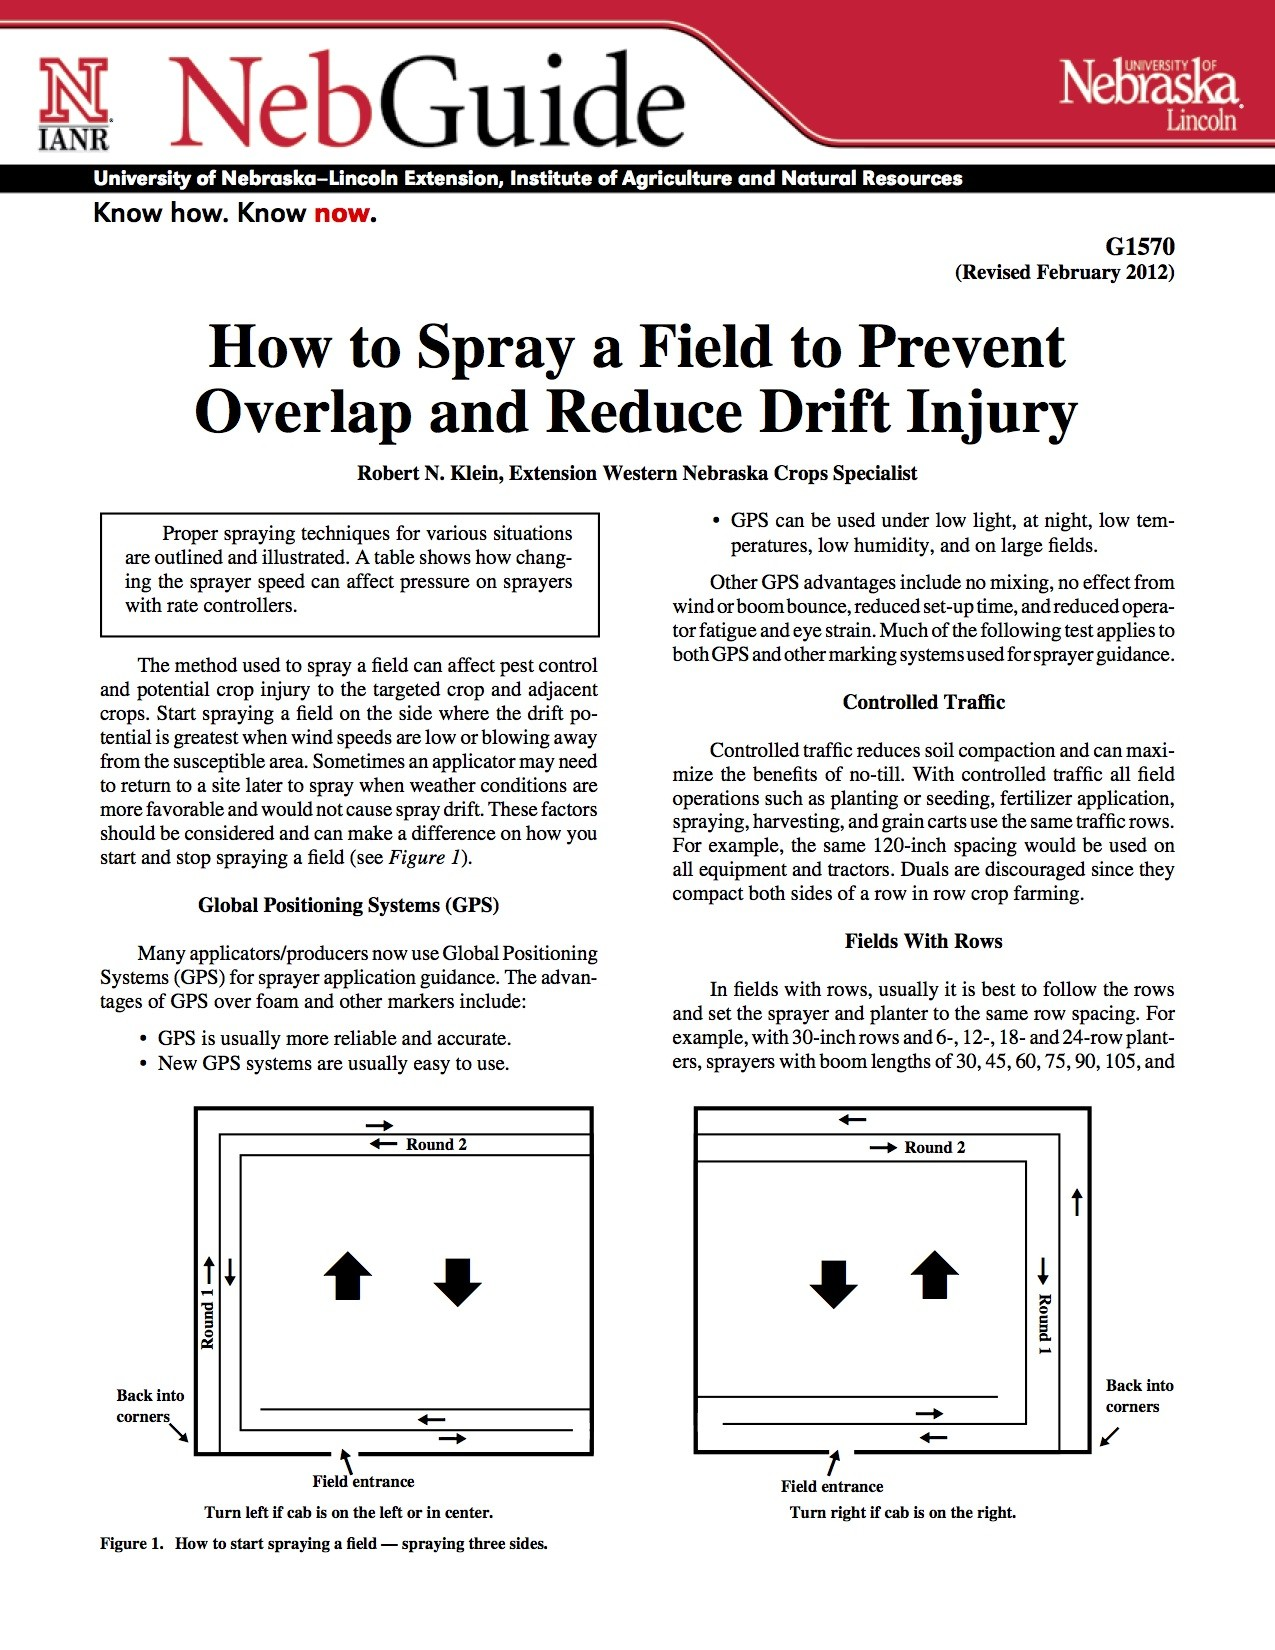 How to Spray a Field to Prevent Overlap